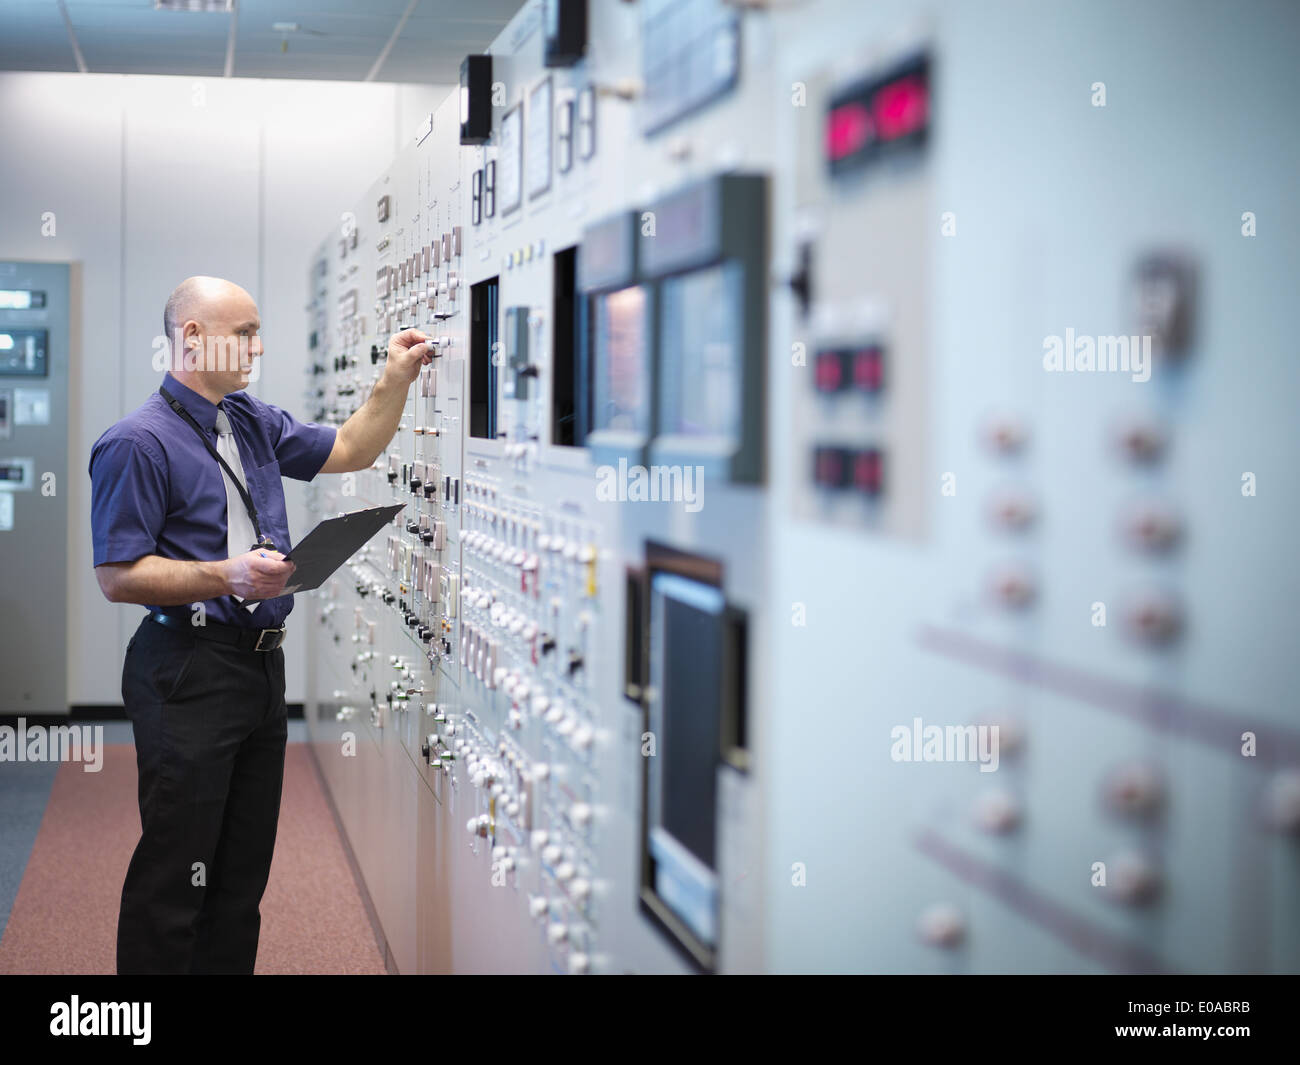 Engineer inspecting nuclear power station control room simulator - Stock Image